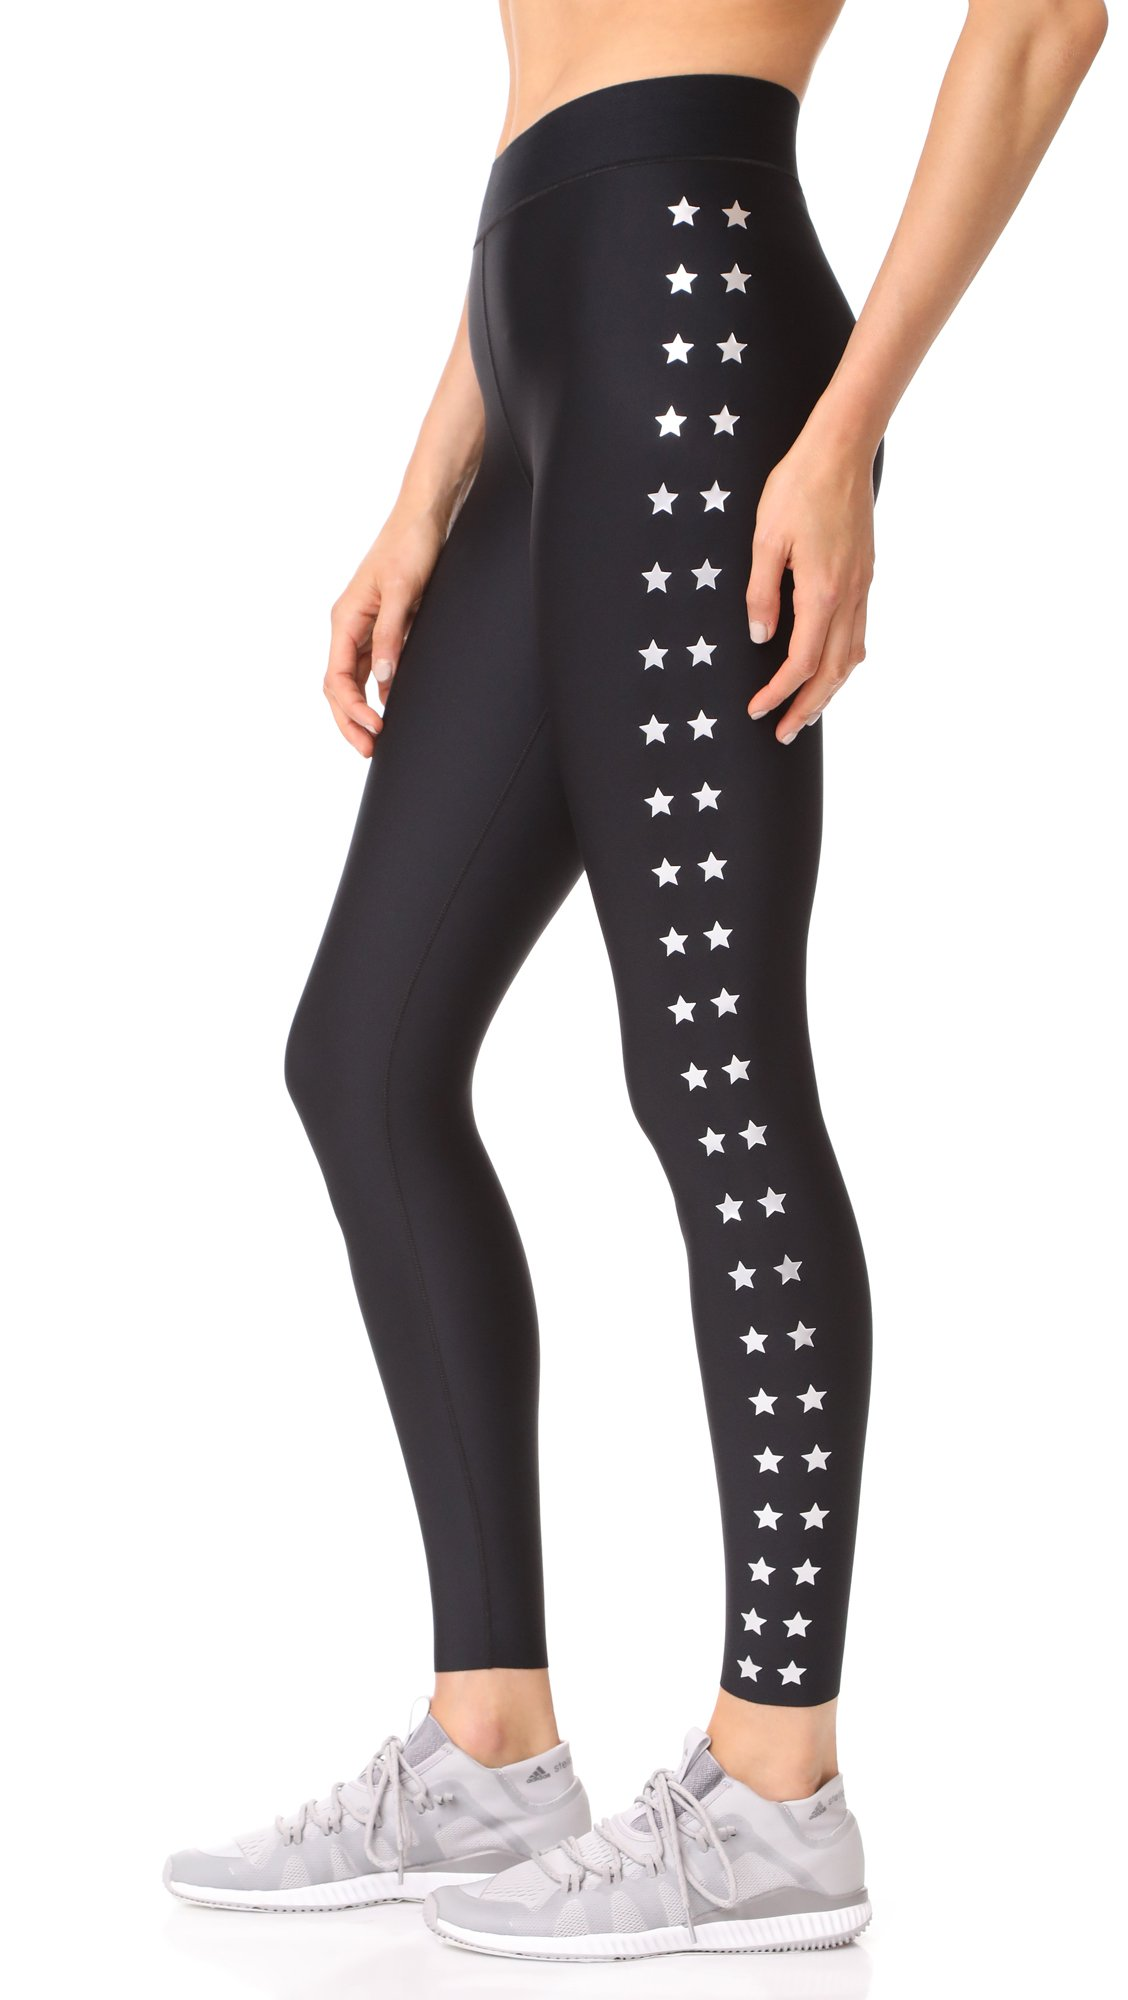 Ultracor Women's Ultra Matte Flash Knockout Leggings, Nero/Silver, X-Small by Ultracor (Image #3)